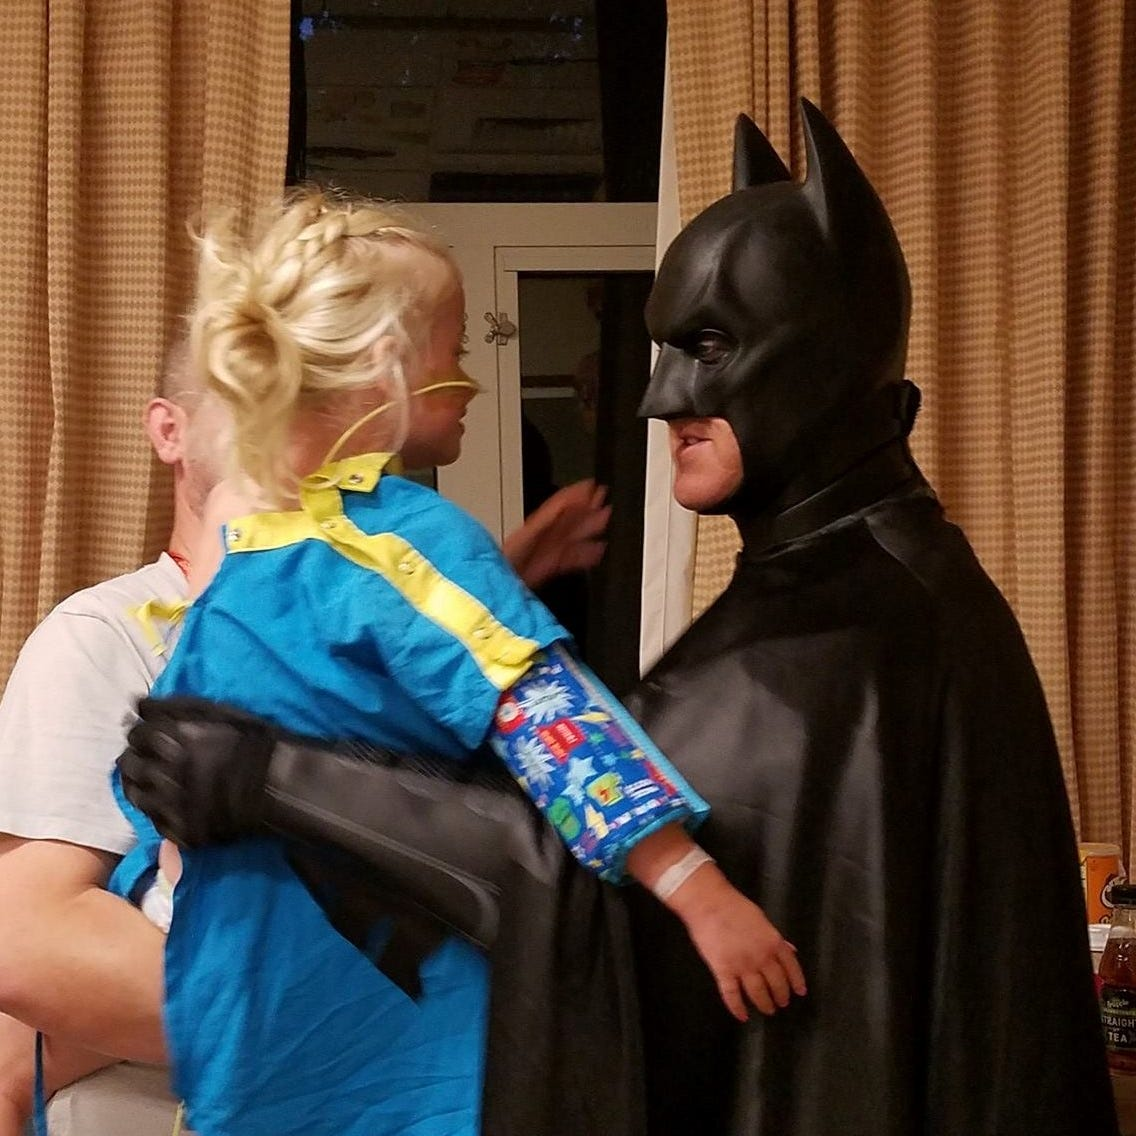 The hero Sioux Falls deserves: Marine veteran becomes Batman for hospitalized children